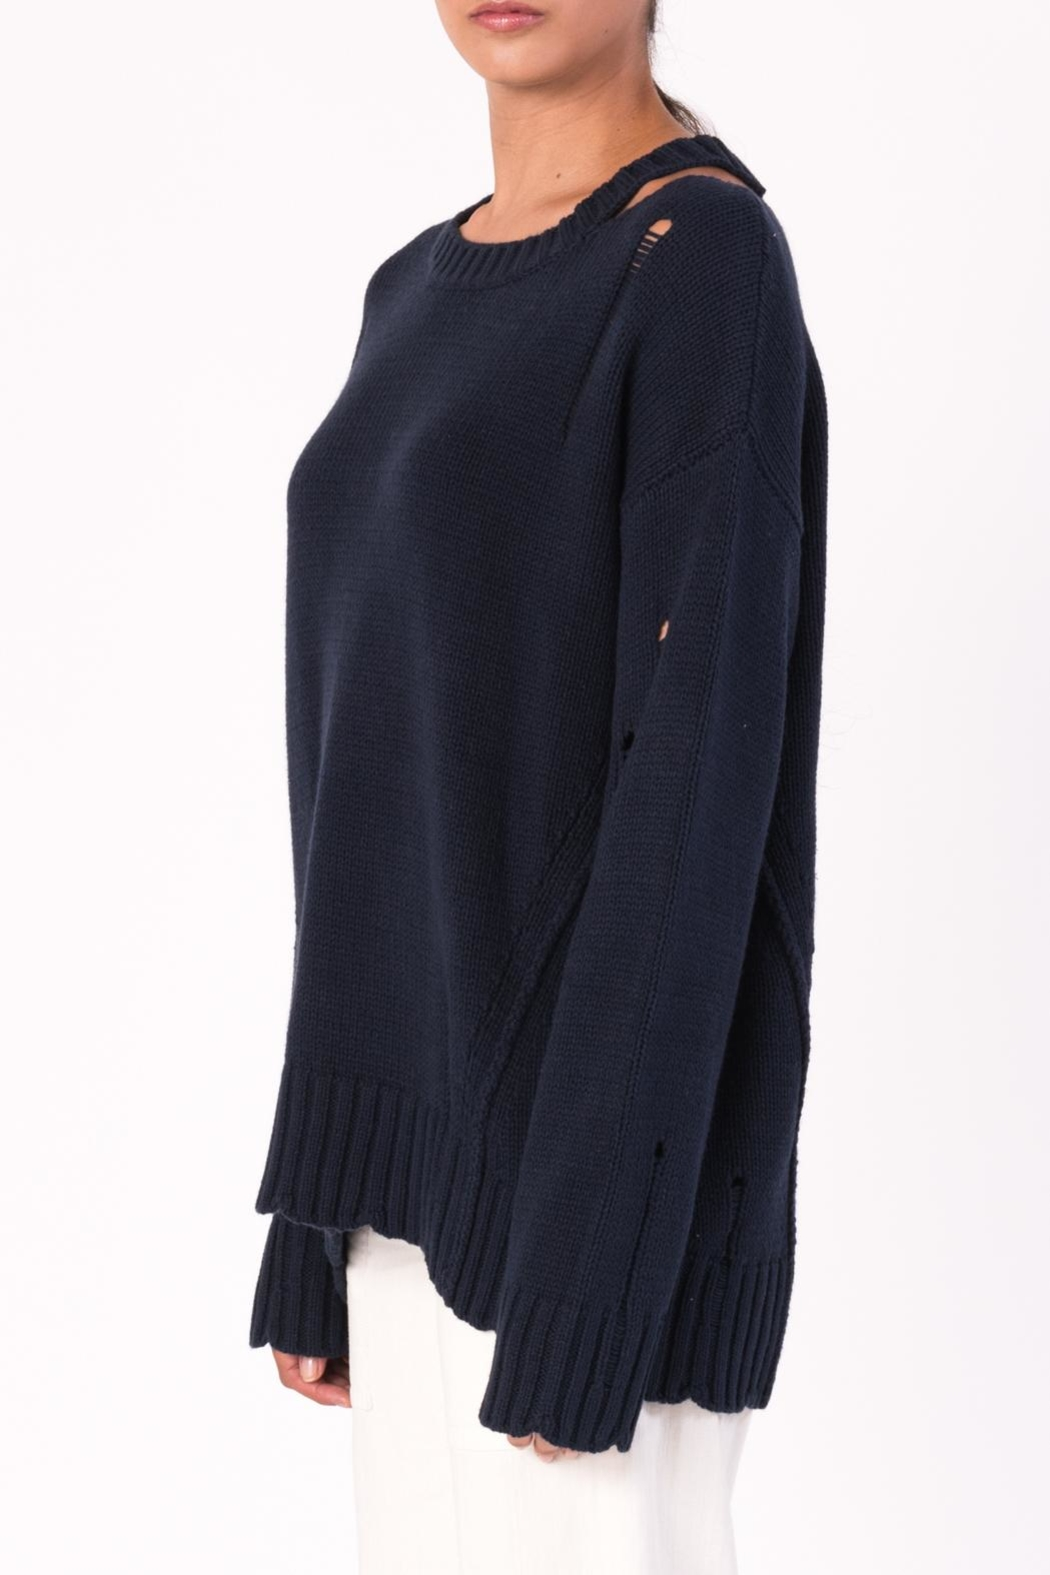 Margaret O'Leary Cotton Grunge Sweater - Back Cropped Image